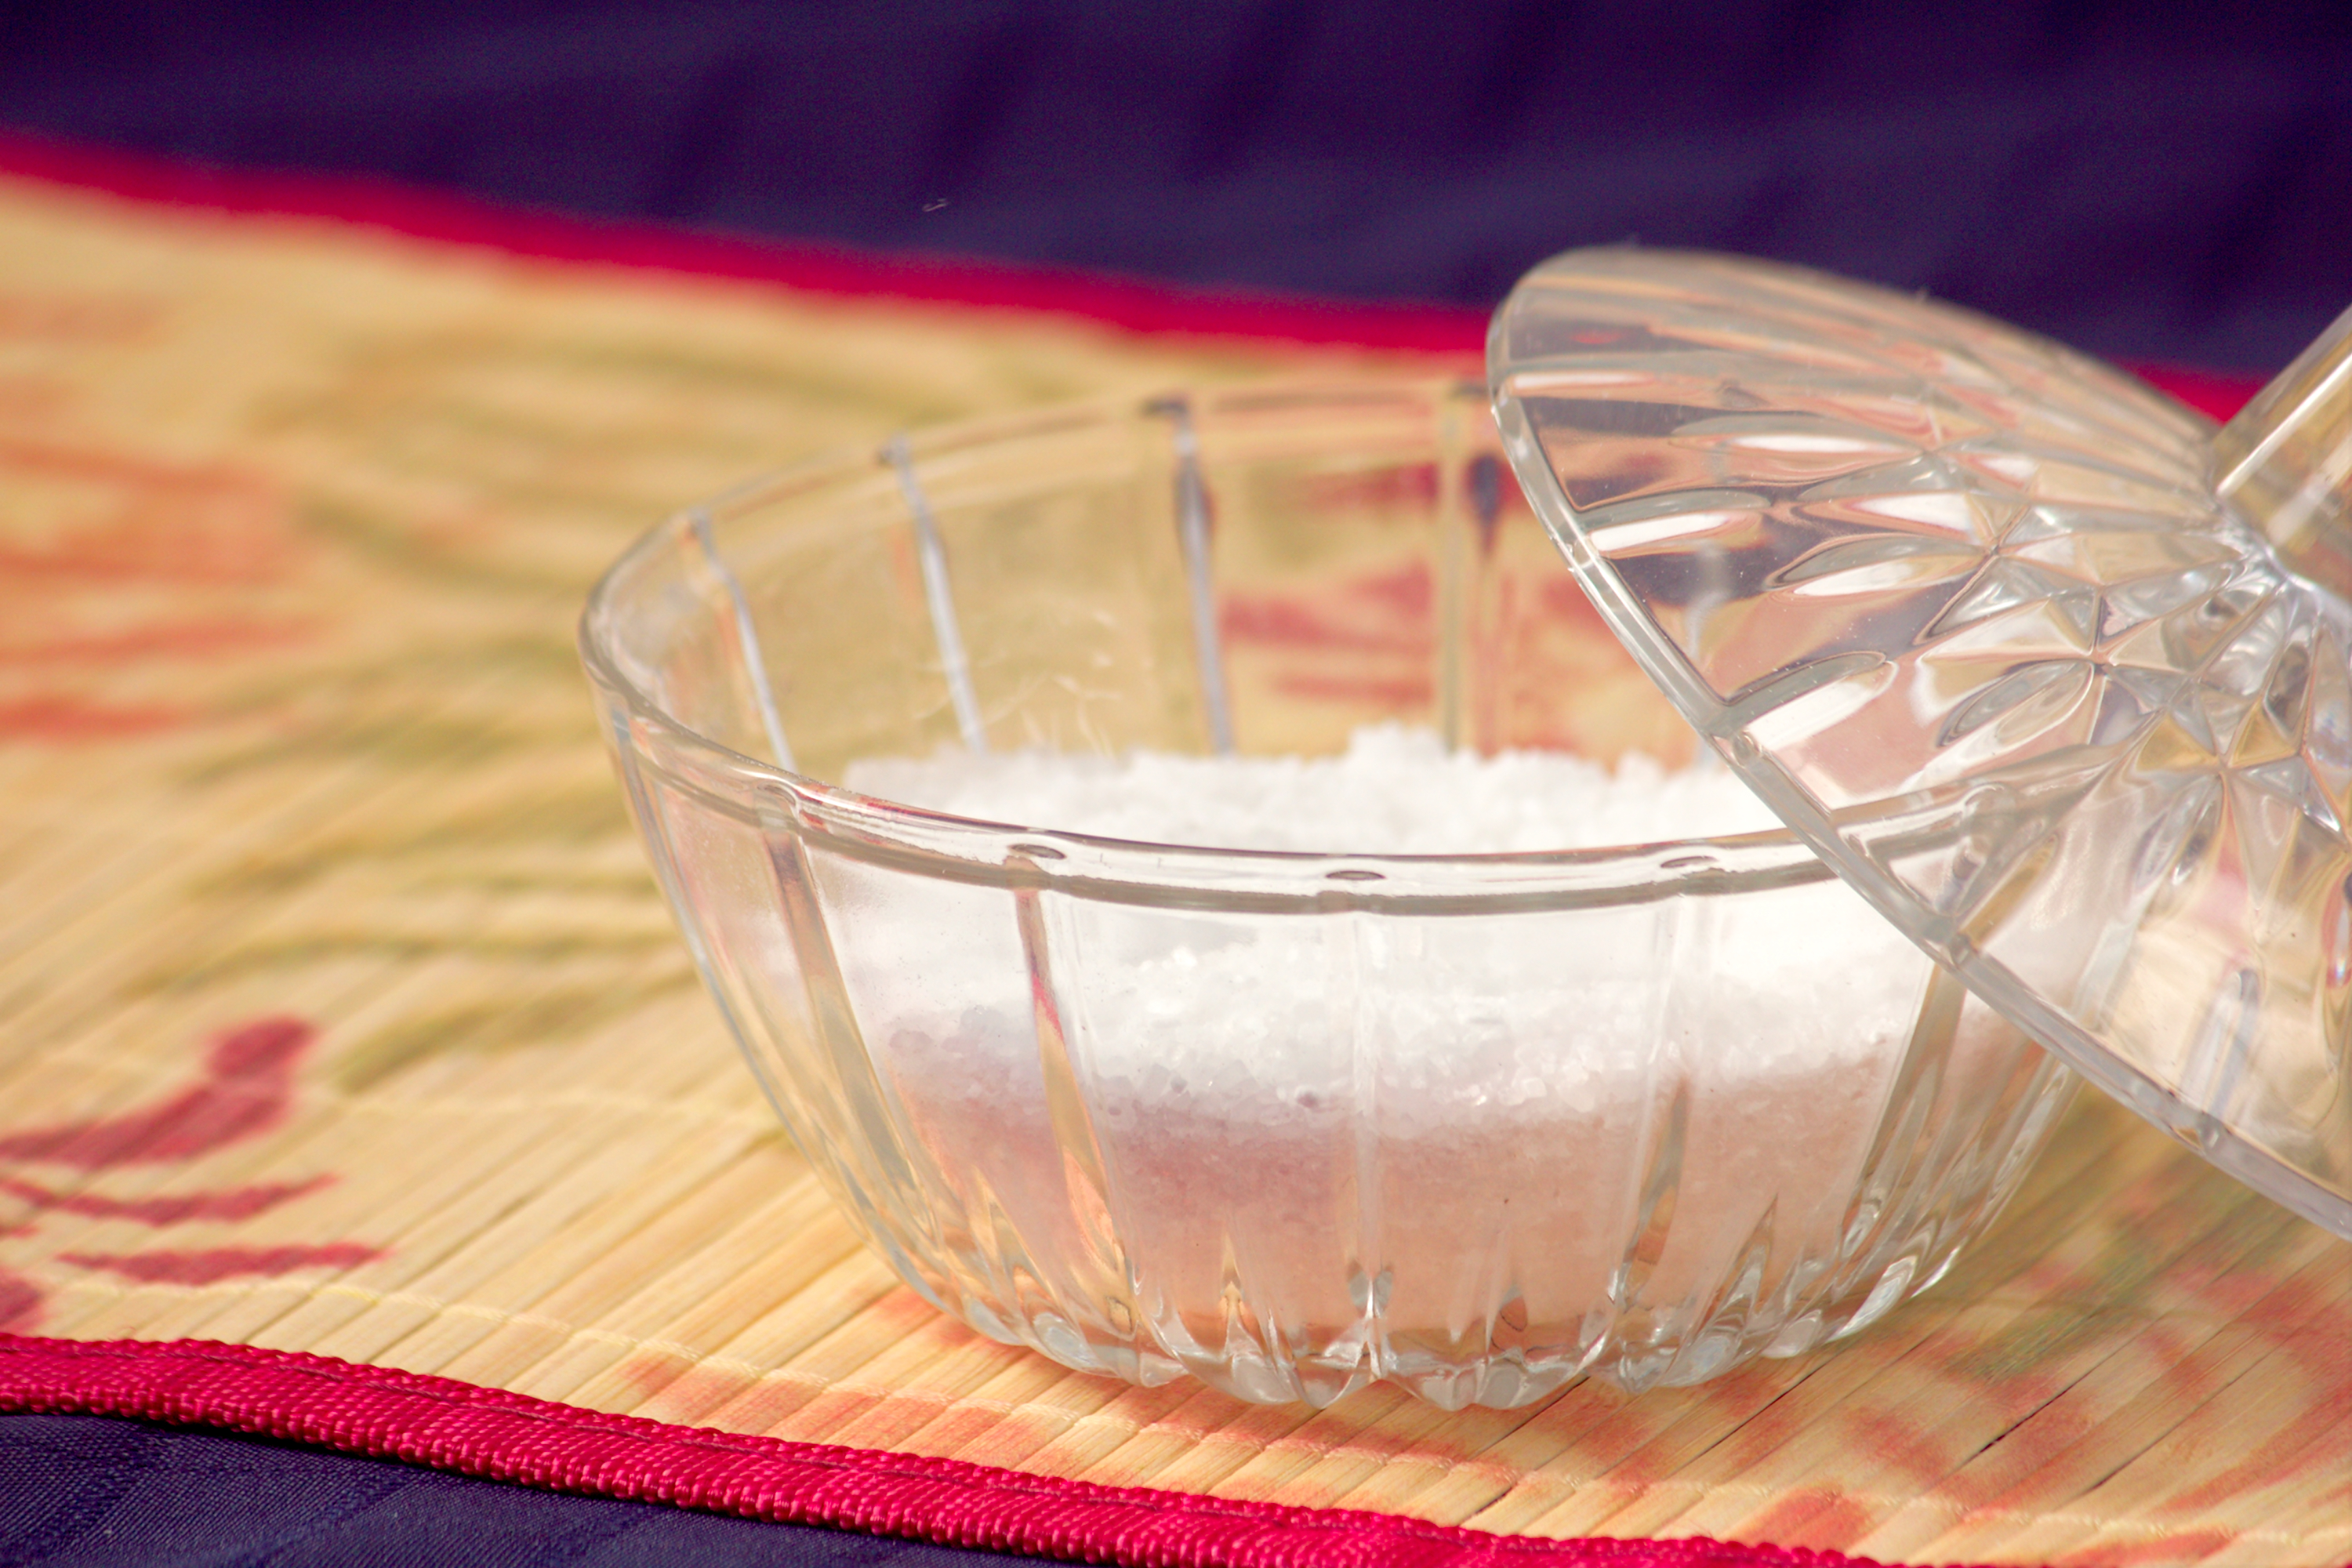 How to Soak Your Feet in Epsom Salt to Get Rid of the Calluses on